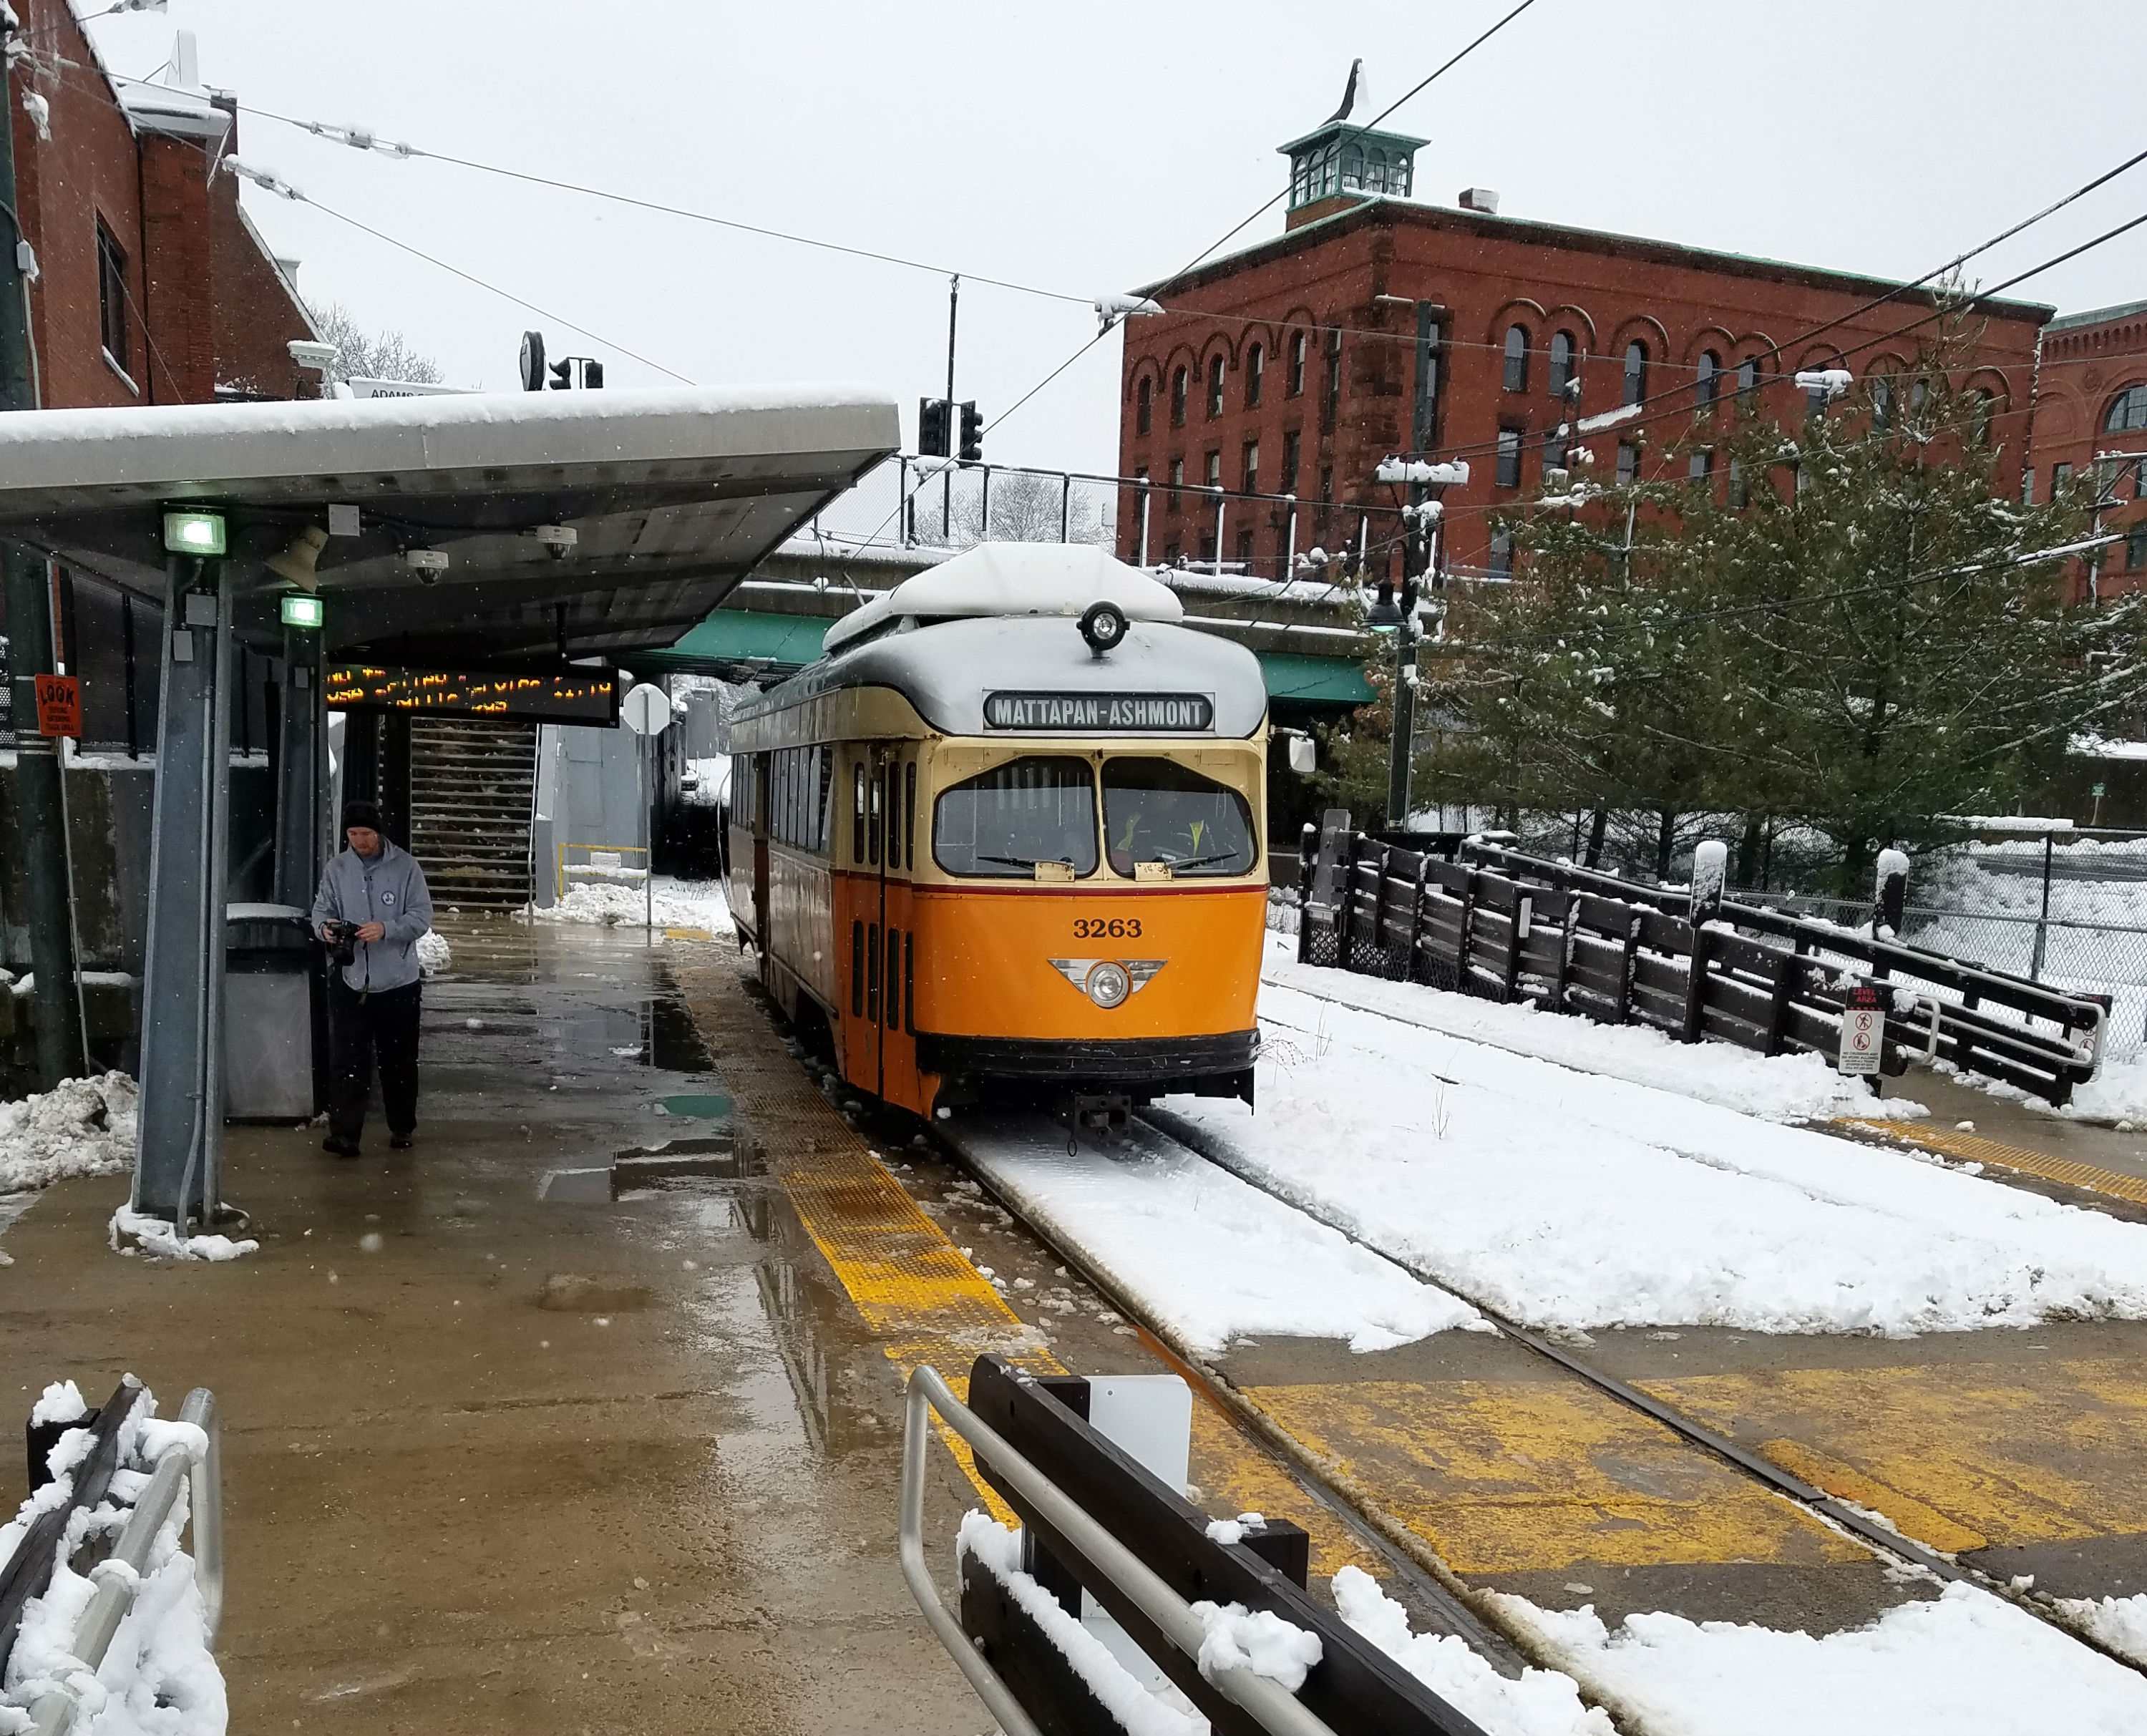 The Mattapan Trolley pulls out to the platform at Milton station. A rider who just disembarked walks off.